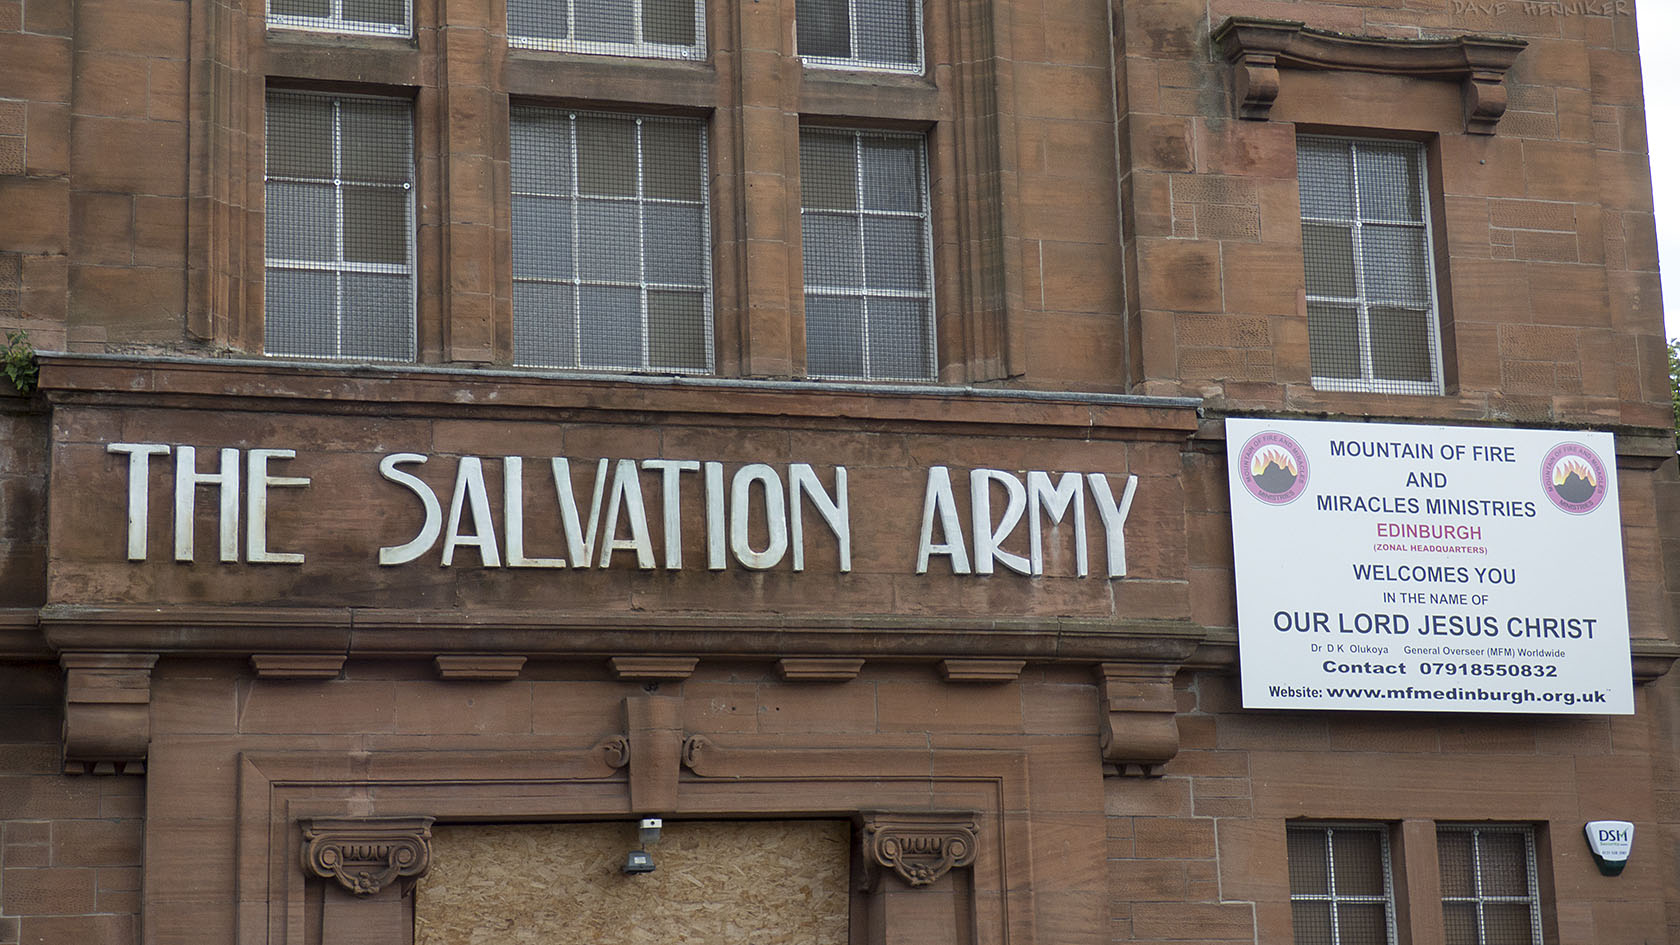 No longer the home of the Salvation Army but now the MOUNTAIN OF FIRE AND MIRACLES MINISTRIES. It would be a shame to tear down the art deco lettering.